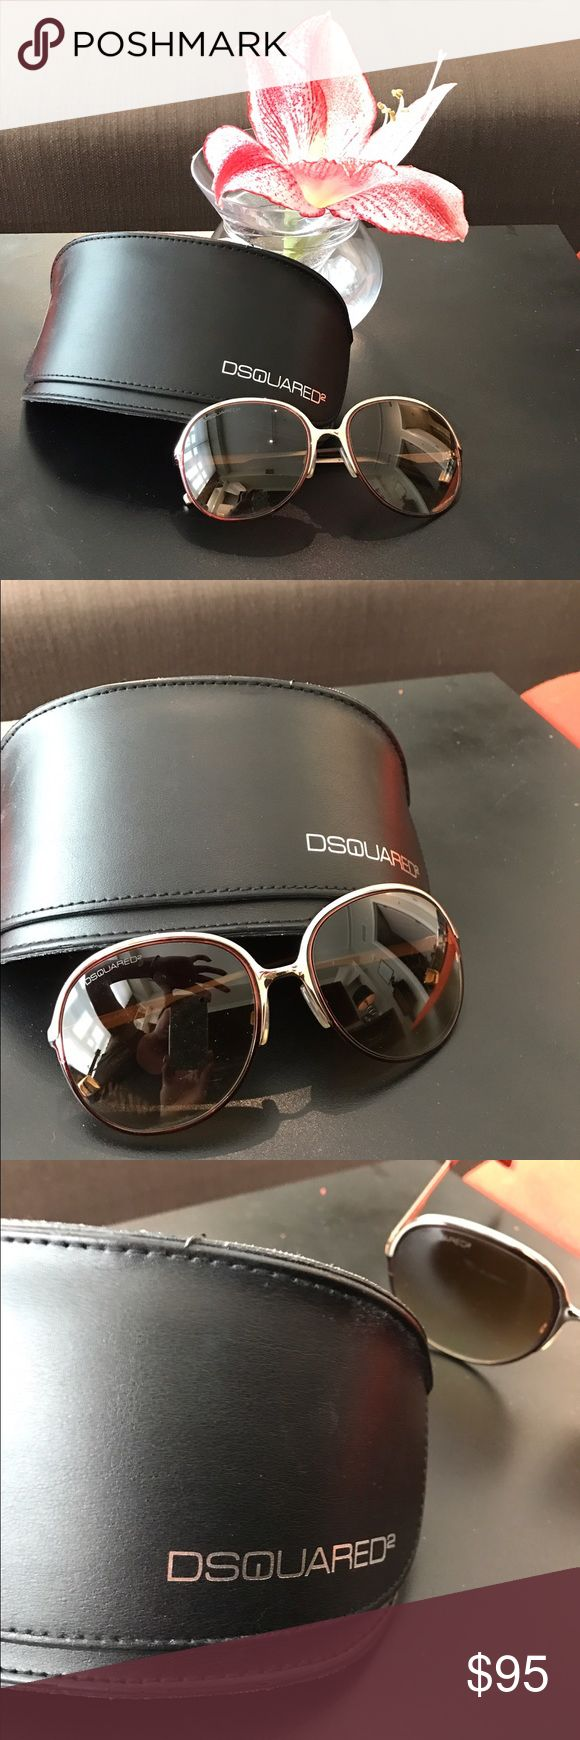 Like new! Dsquared sunglasses. Gold rim, tortoise Almost new! Dsquared2 sunglasses! Very stylish. I would keep but I just started wearing prescription sunglasses. They have a comfy nose piece. The top is rimed in gold & the bottom/ear piece has a slight tortoise look. They're a lot of fun! DSQUARED Accessories Sunglasses